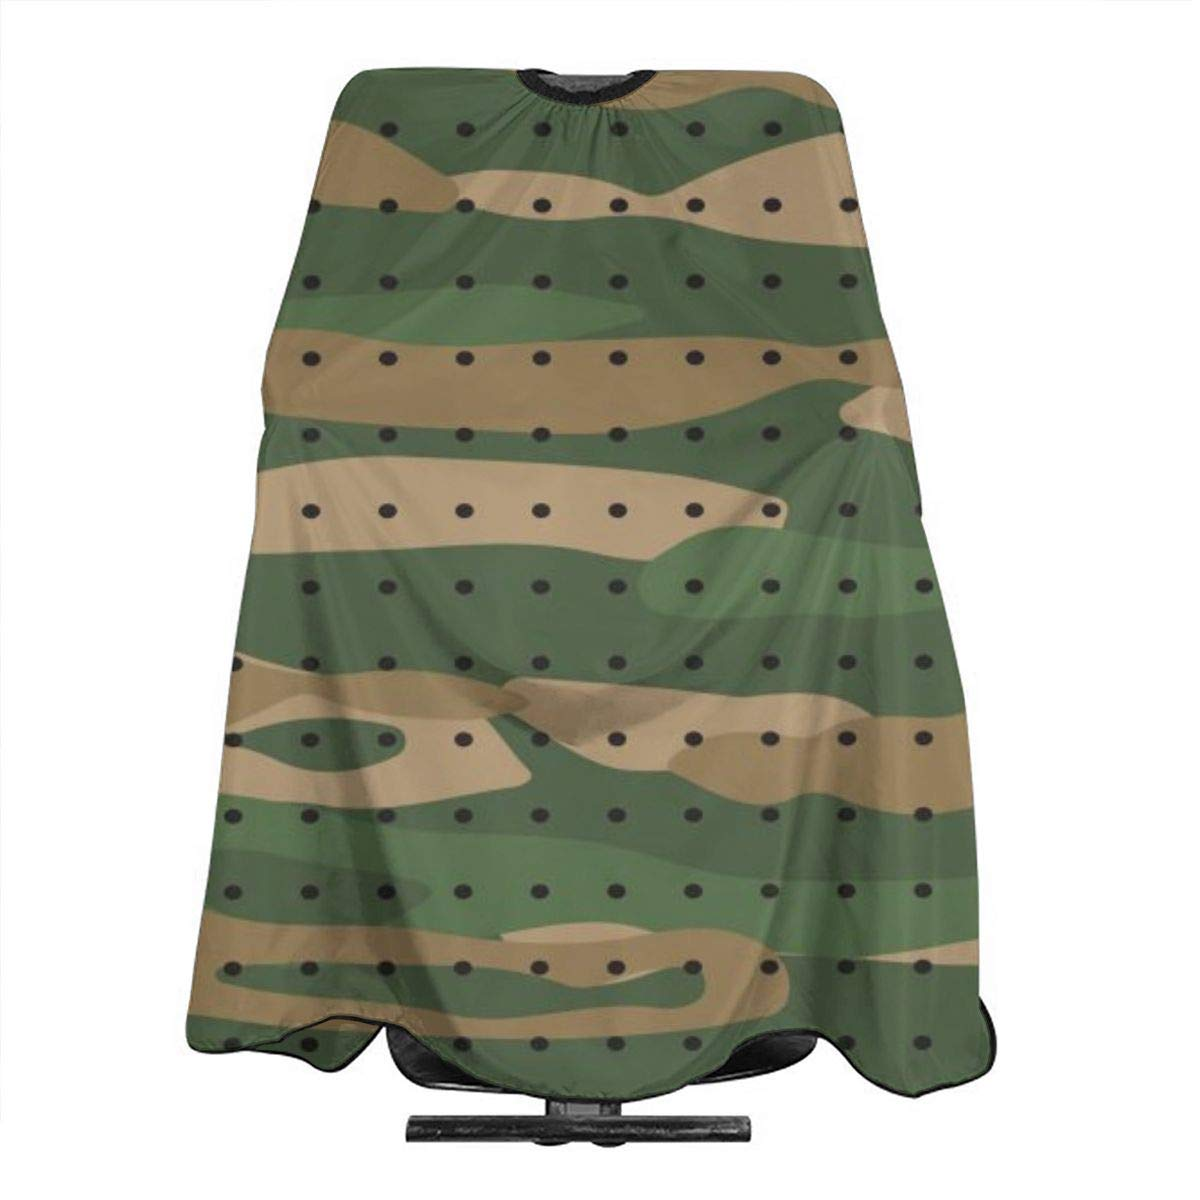 Professional Barber Cape Salon Hair Styling Cutting Haircut Aprons Green Camo Print Capes For Proof Hairdresser Coloring Perming Shampoo Chemical 55